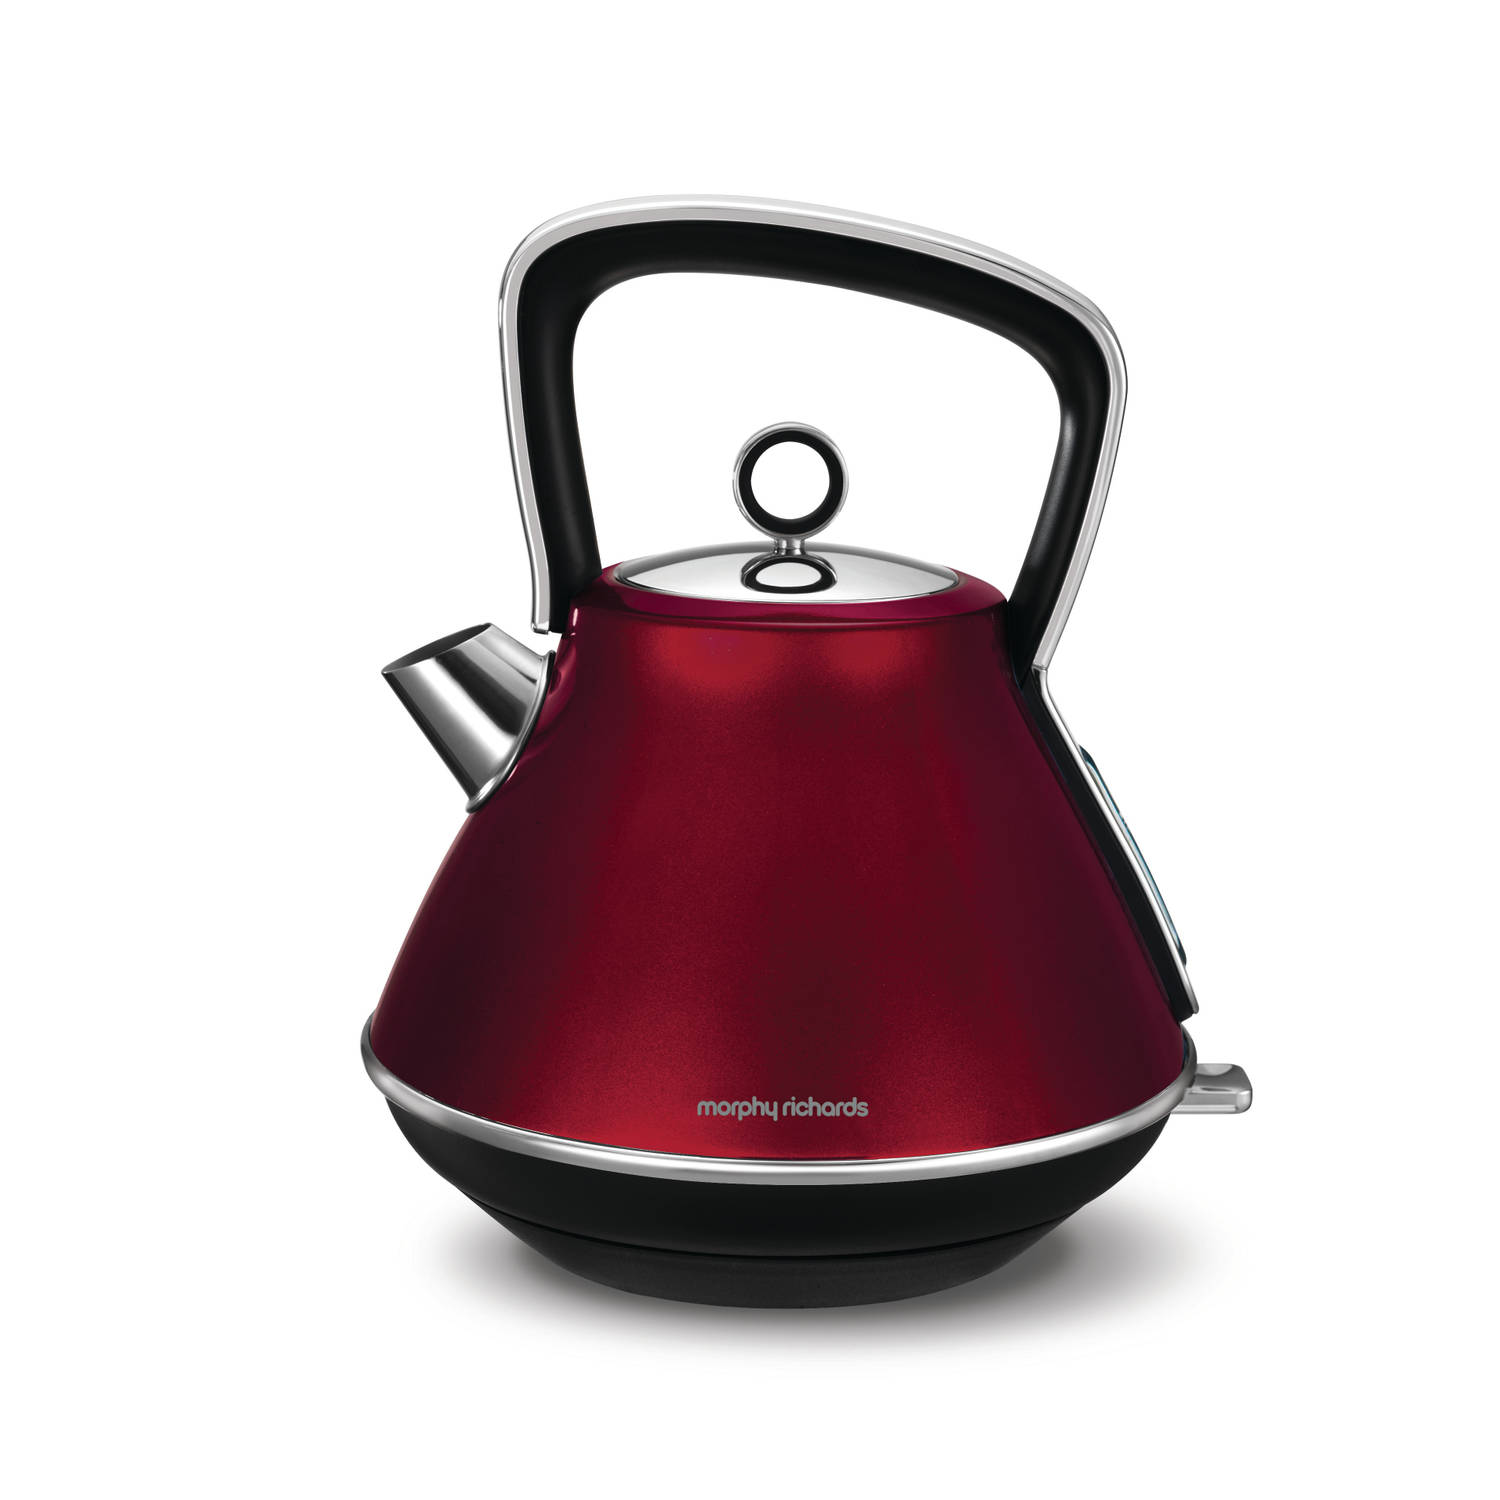 Morphy Richards waterkoker Evoke Special Edition (piramide-vorm) - rood